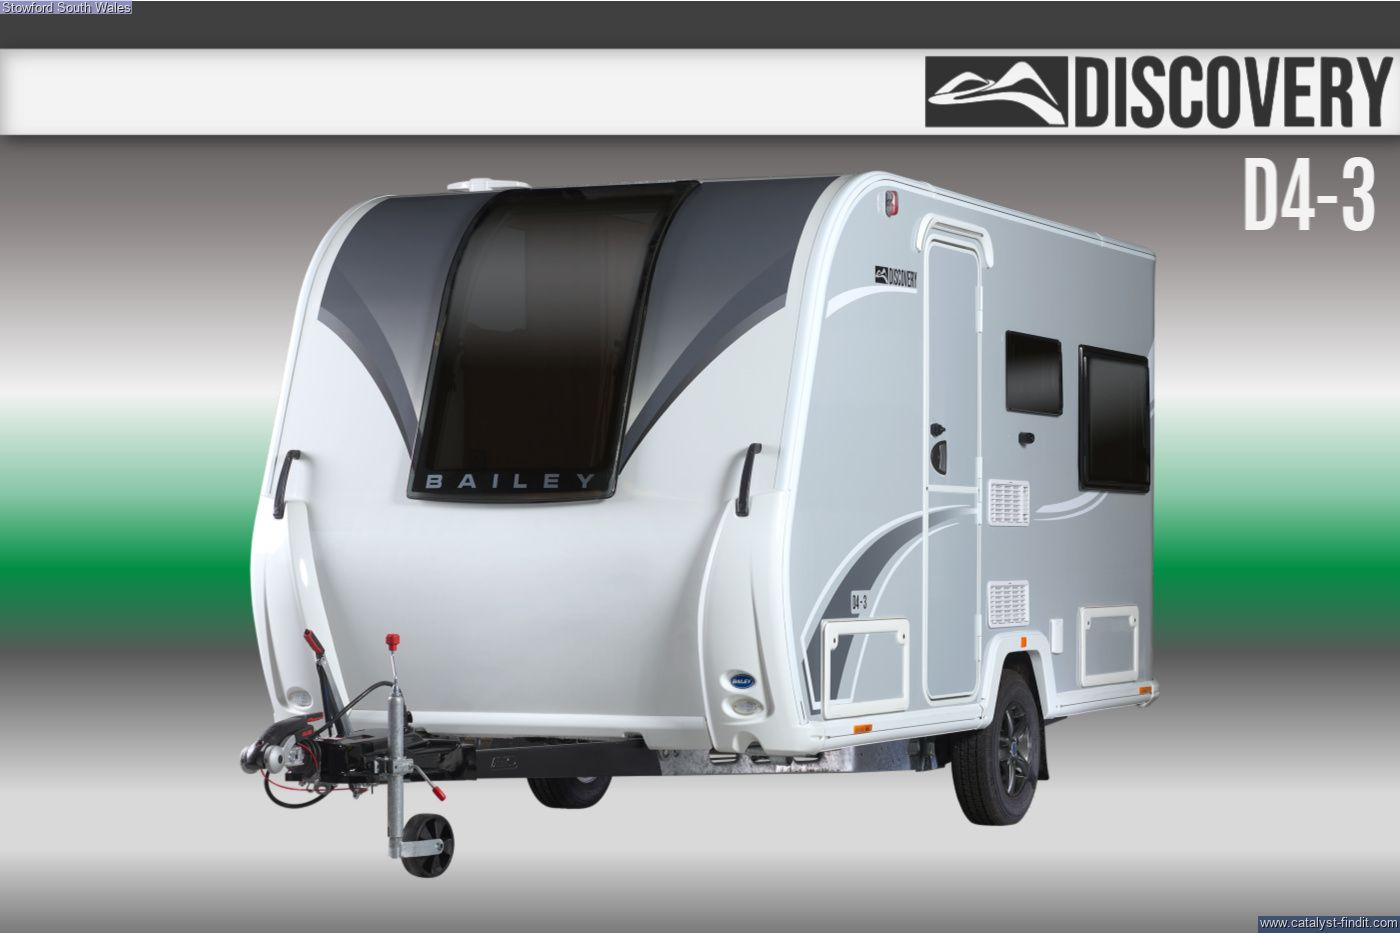 Bailey Discovery D4-3 2022